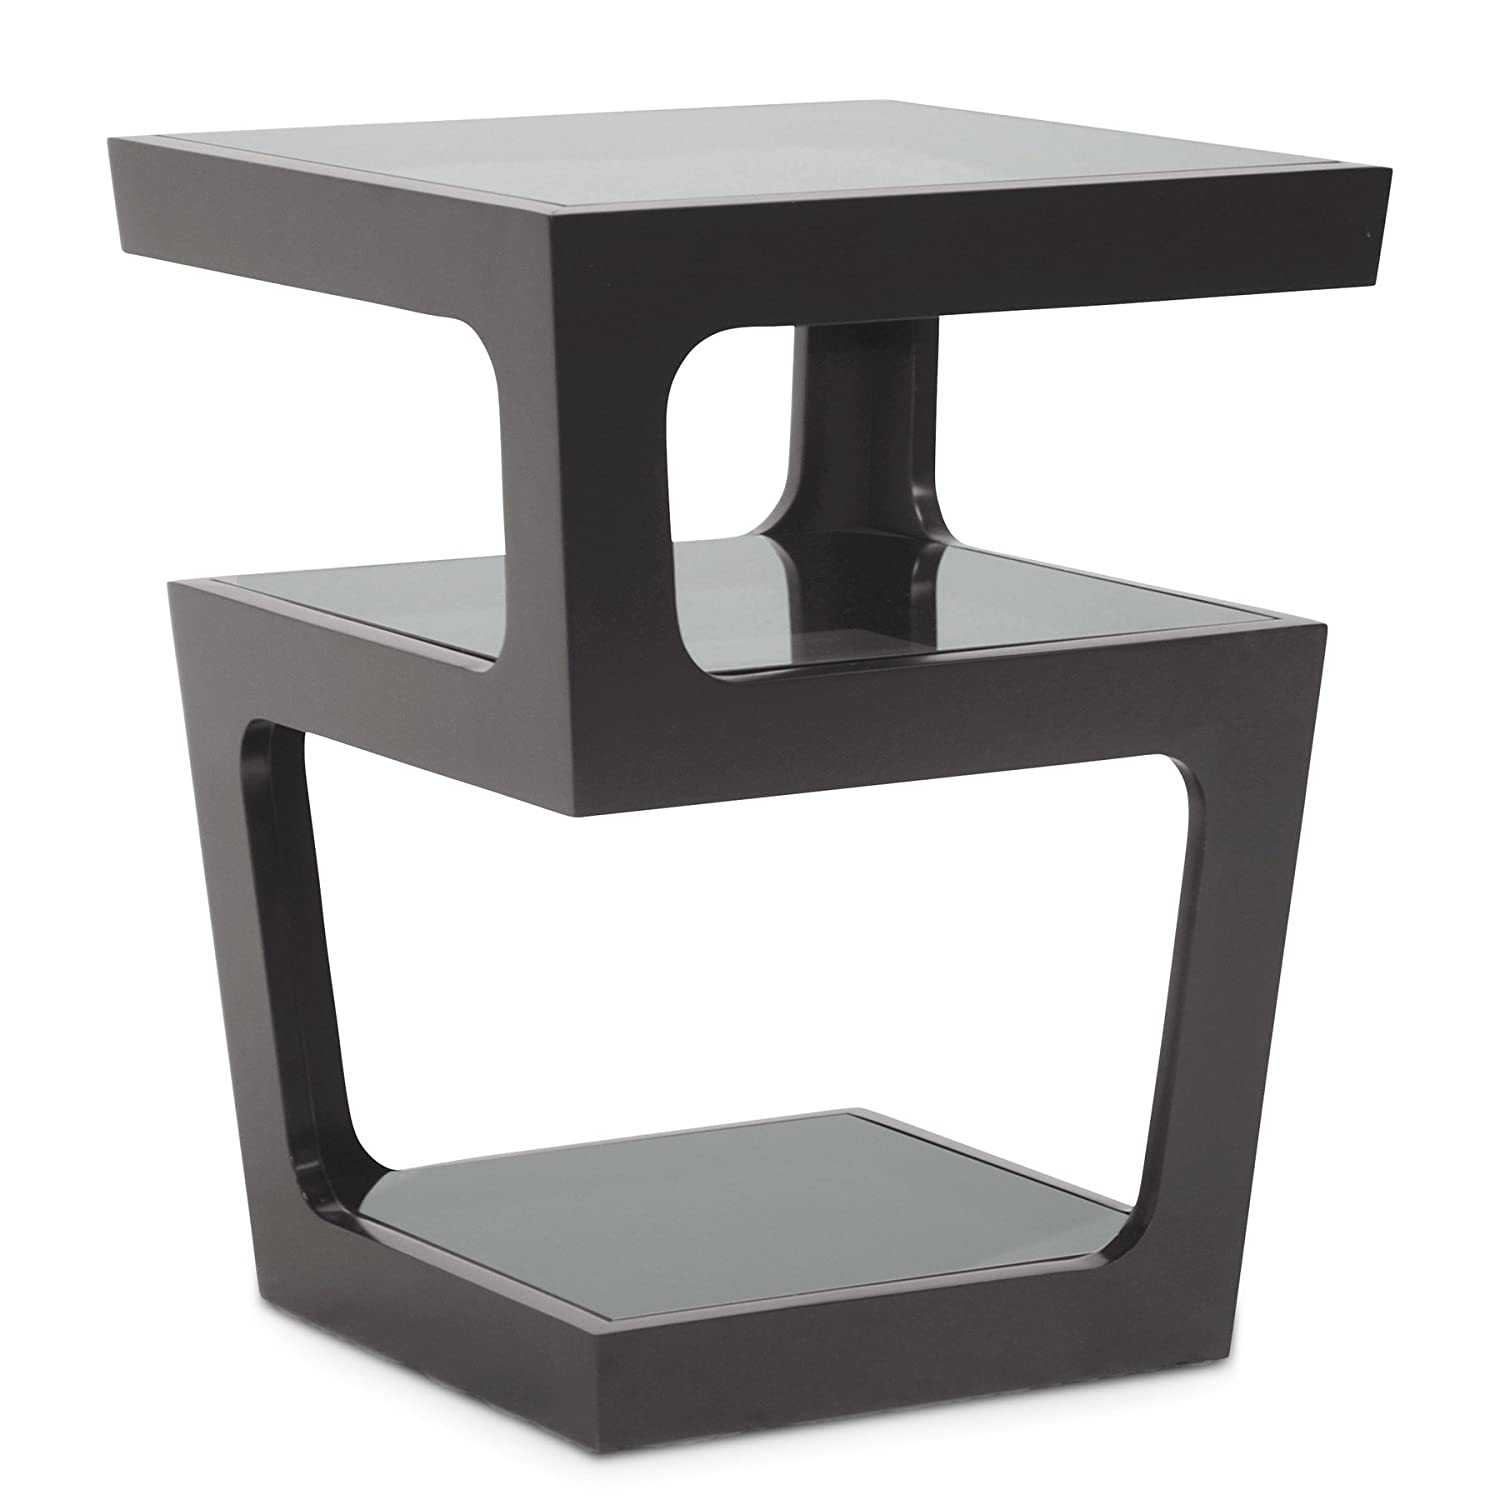 Amazon.com: Baxton Studio Clara Modern End Table with 3-Tiered ...